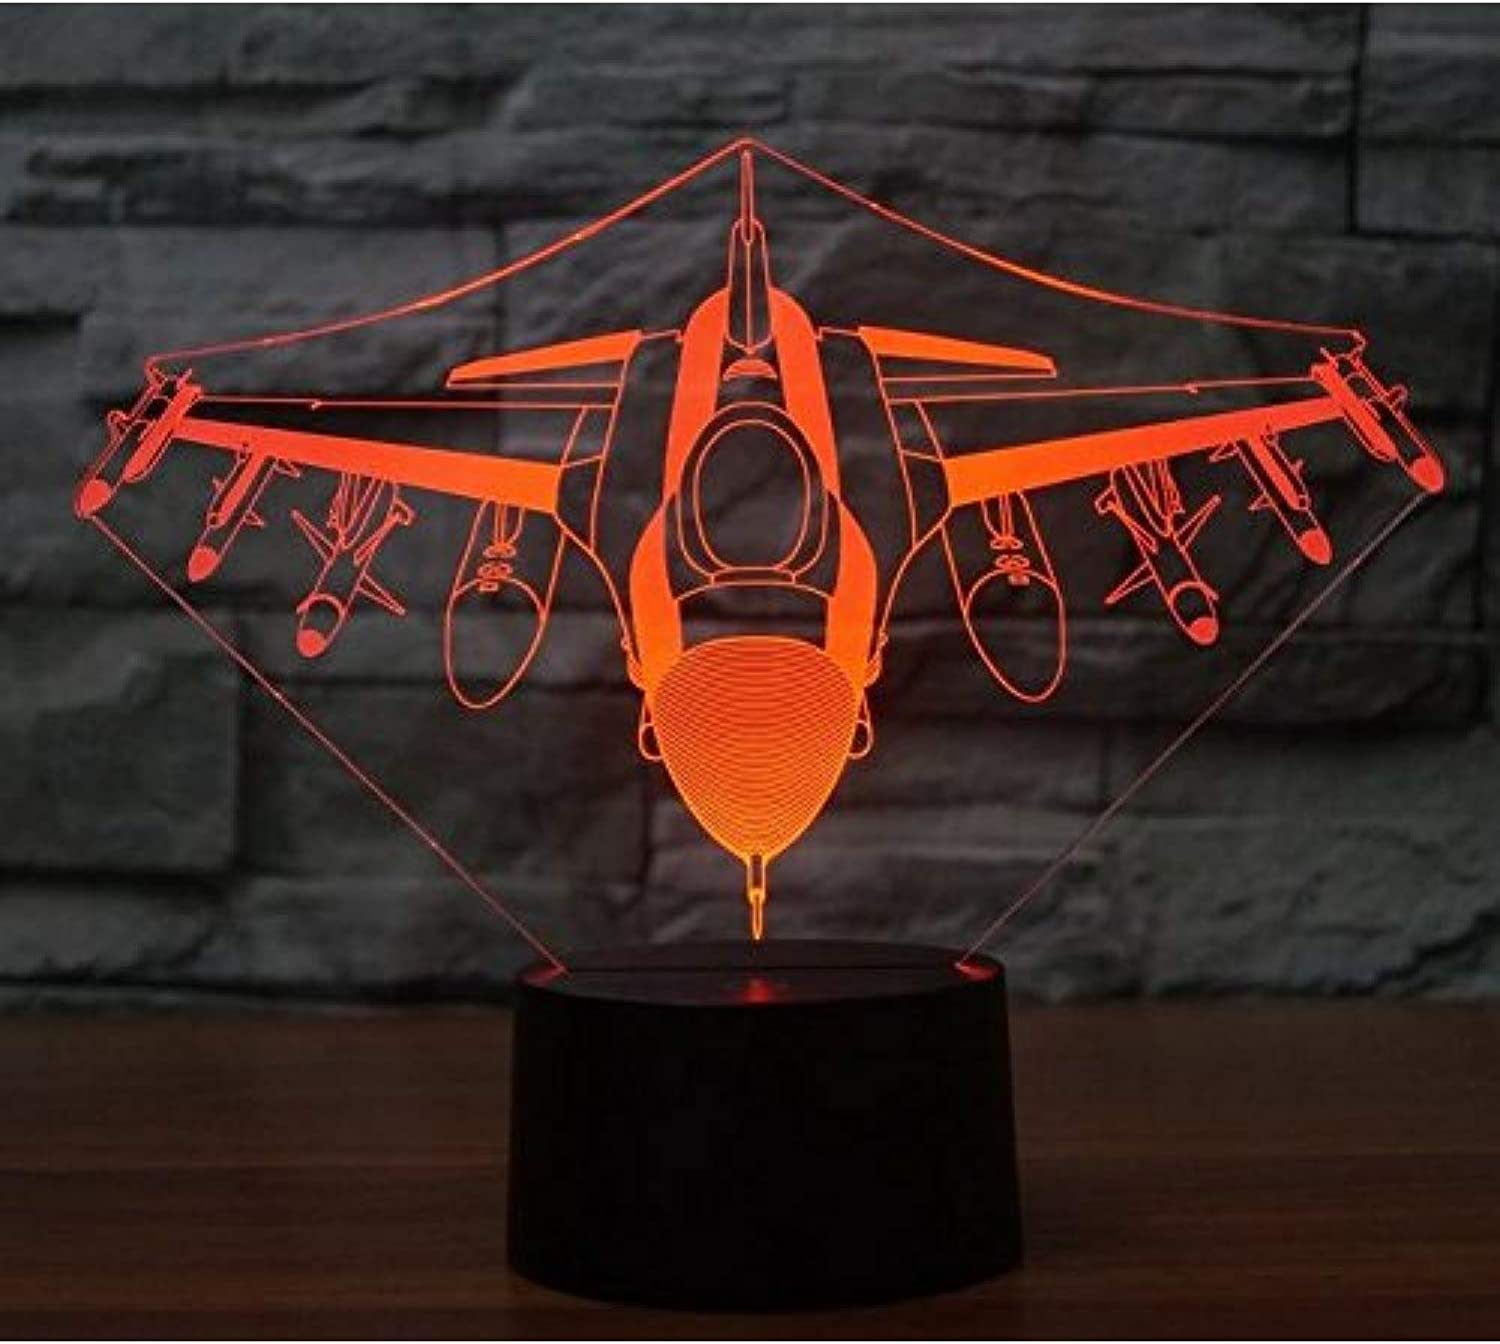 KKXXYD Aircraft 3D Lamp Air Plane 7-color Multicolord USB Power 3D Night Light Home Decoration